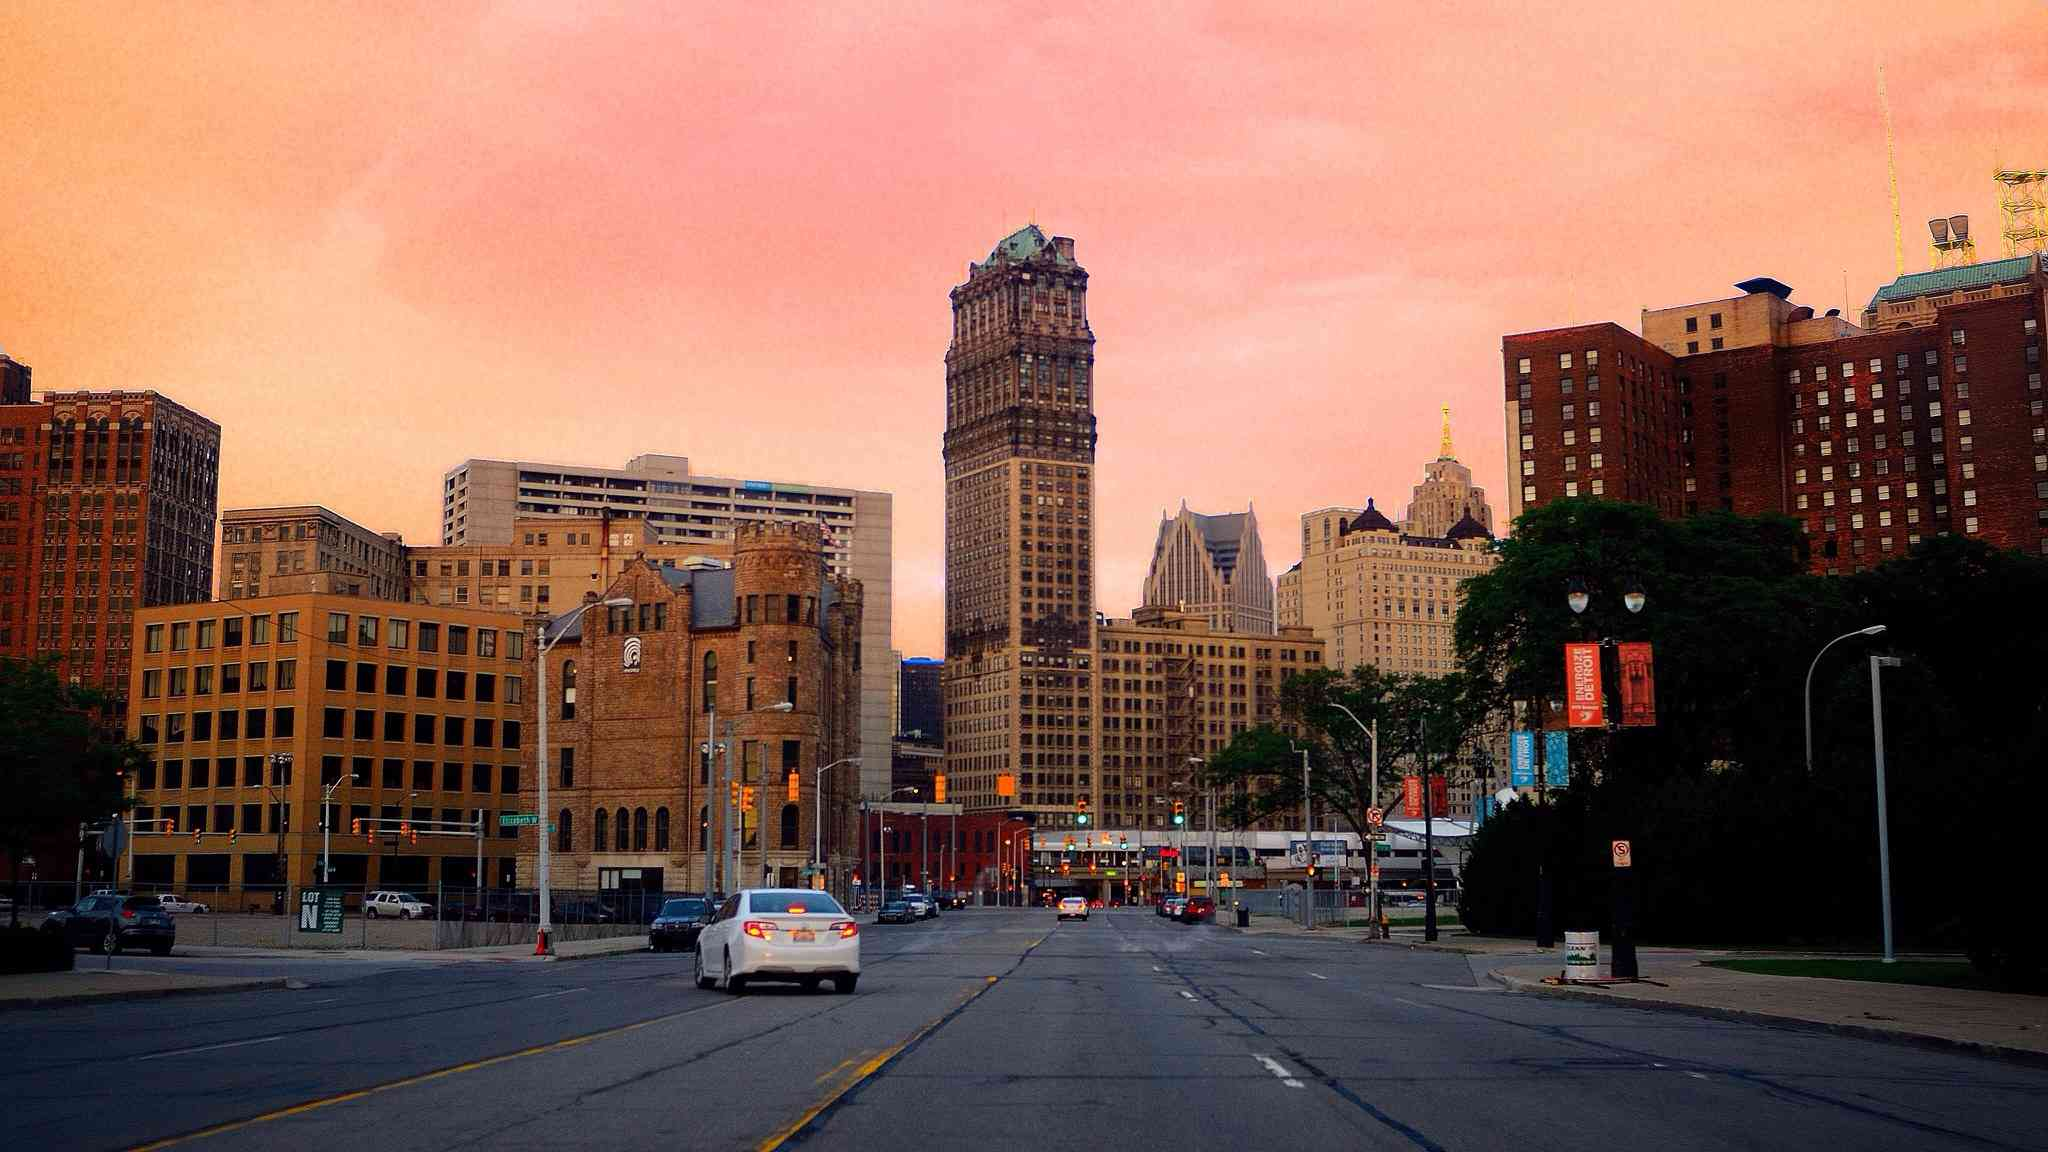 Street And Cityscape Against Sky During Sunset